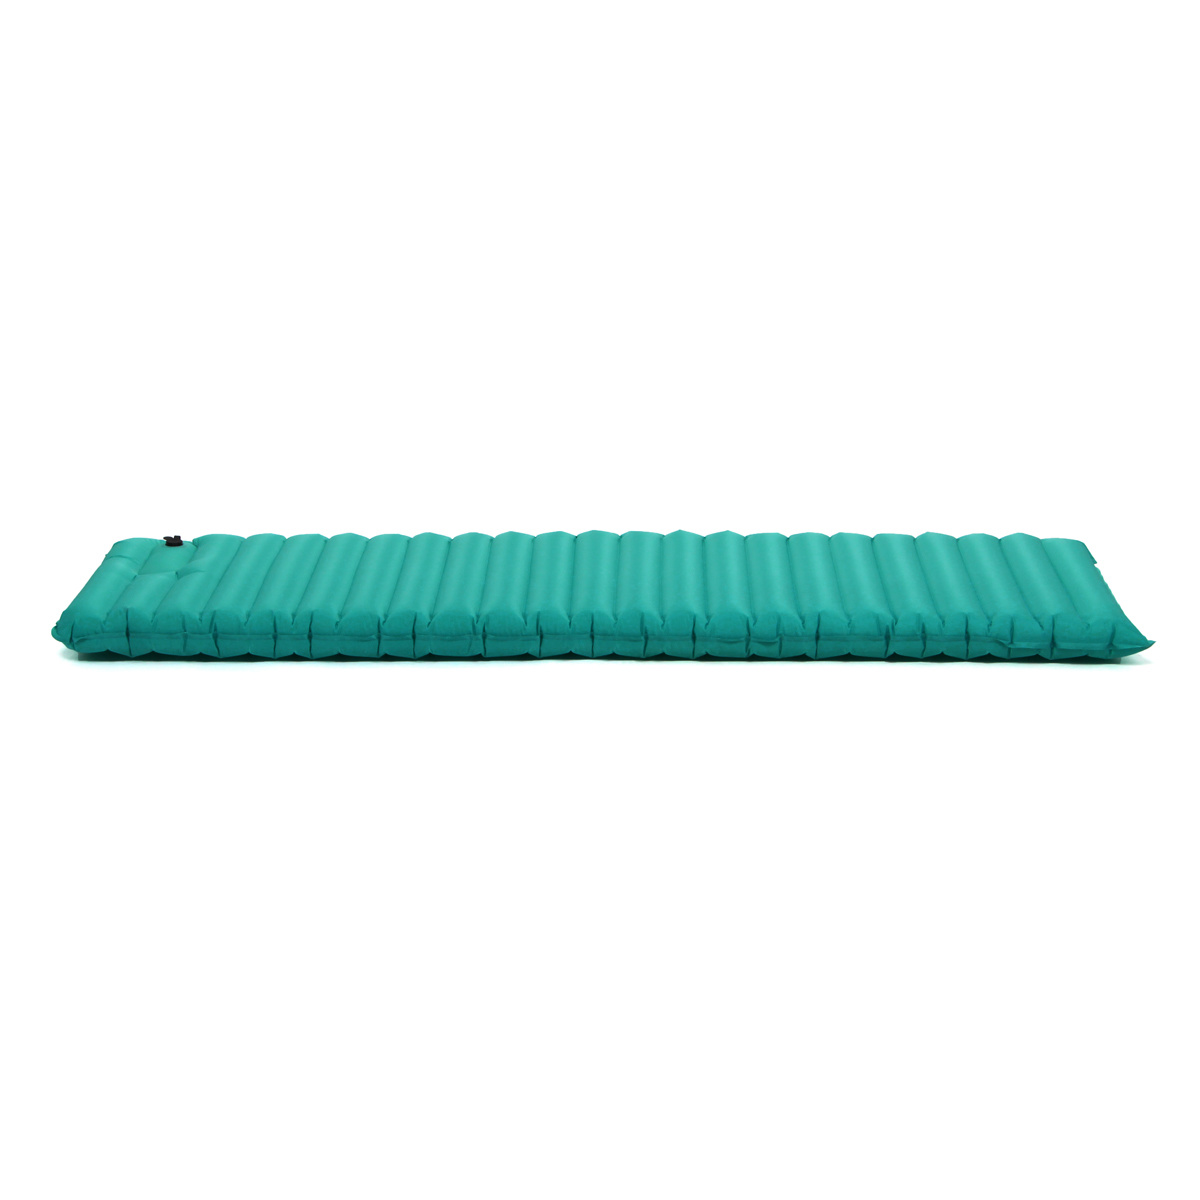 Camping Inflatable Air Mattress with Build-in Pillow